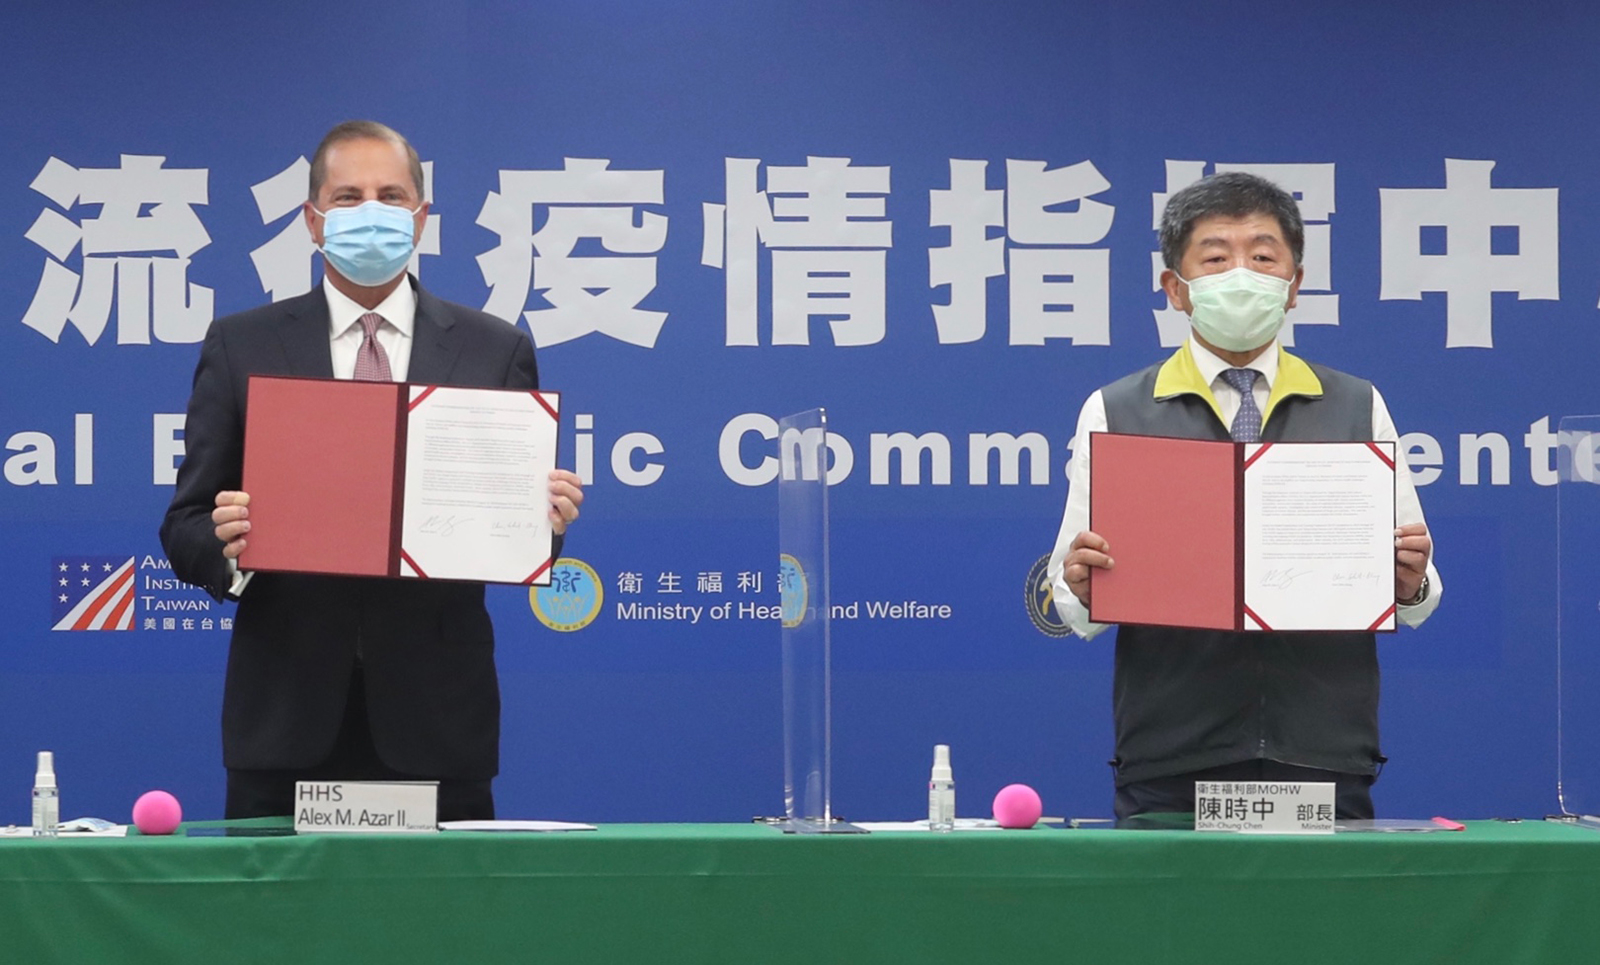 US Health Secretary and Human Rights Services Alex Azar (left) and Taiwan's Minister of Health and Welfare Chen Shih-chung display the signed documents during a memorandum of understanding signing ceremony at the Centers for Disease Control (CDC) in Taipei, Taiwan, on August 10.